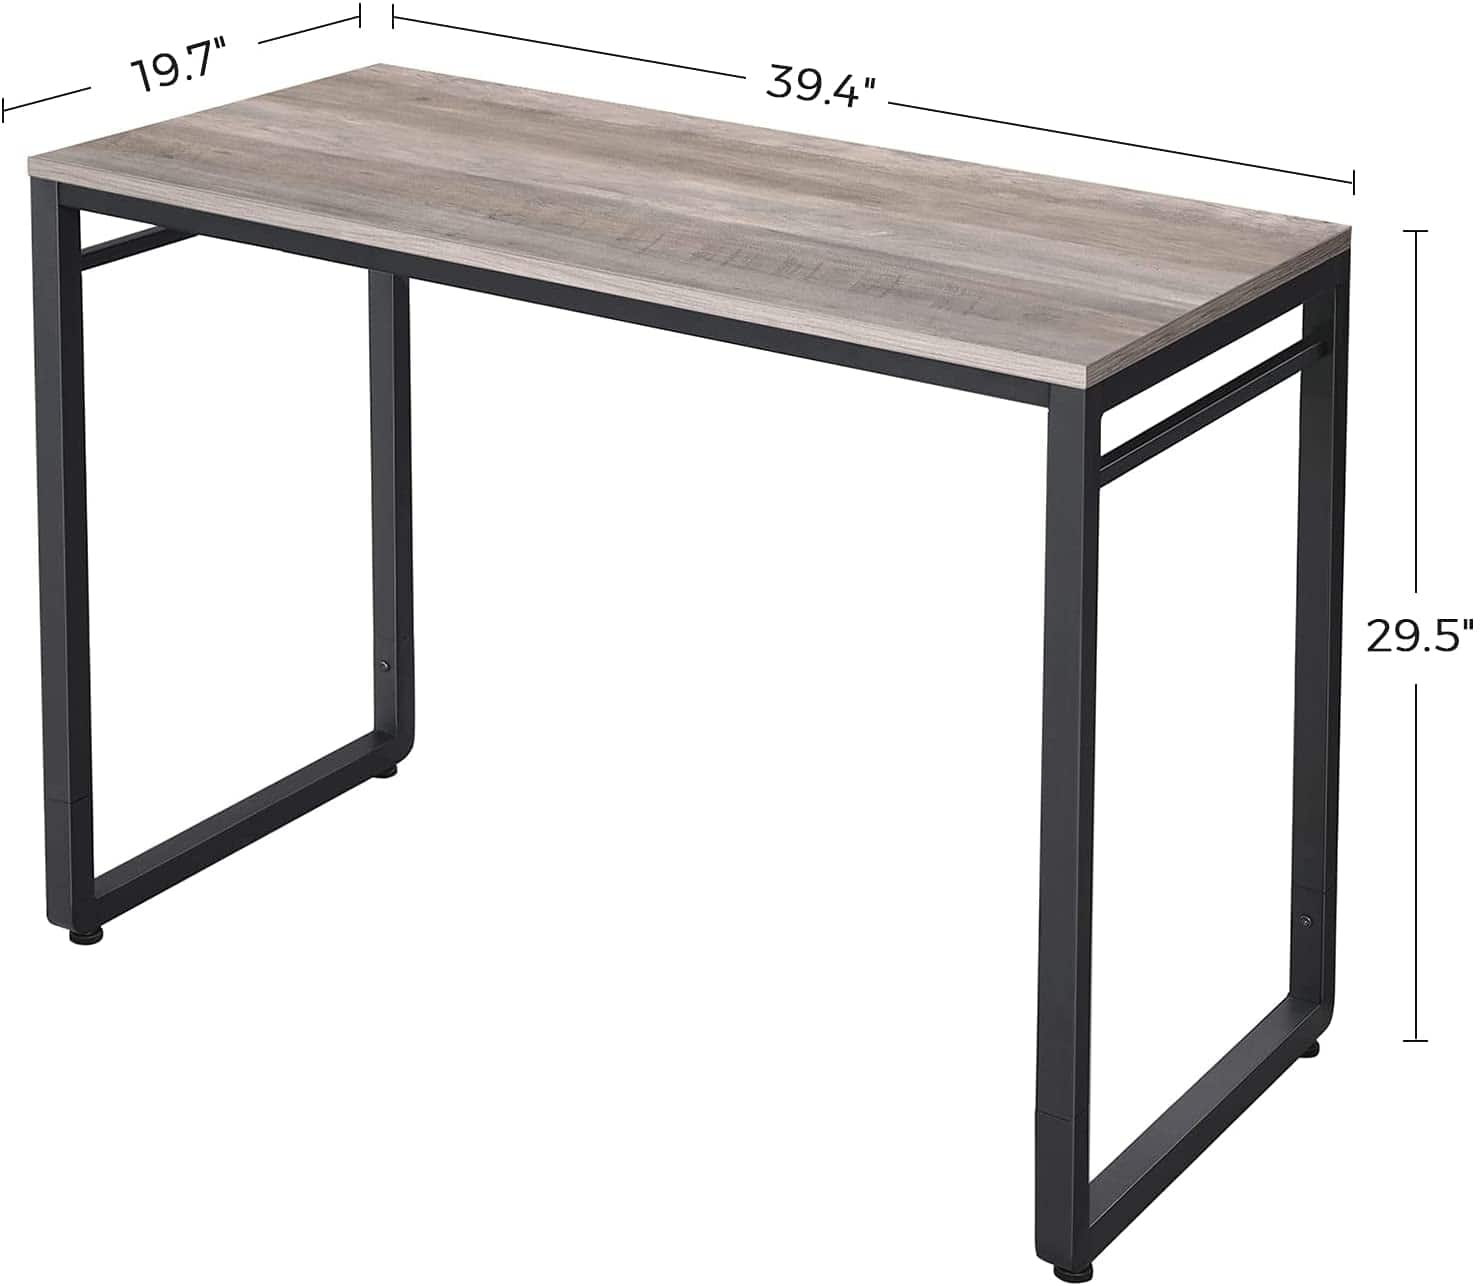 Industrial Style Computer Desk: 39-inch for $32.65, 47-inch for $47.59, 55-inch for $66.87 + Free Shipping